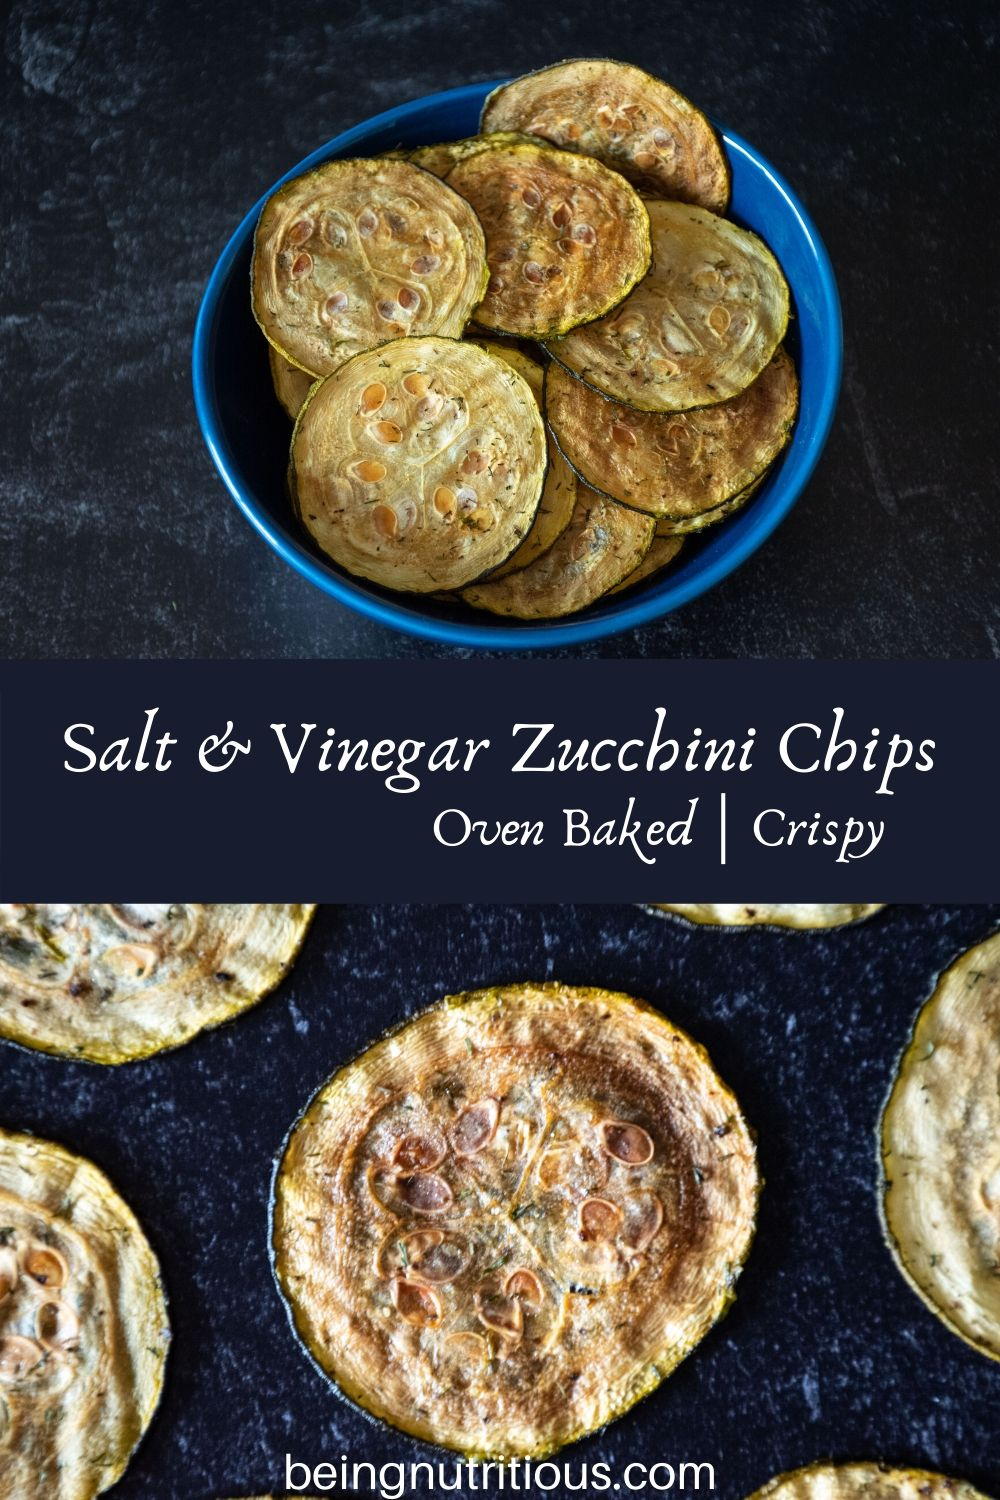 Split image - top image is a blue bowl filled with zucchini chips, bottom image is a close up of a single chip on a dark background.